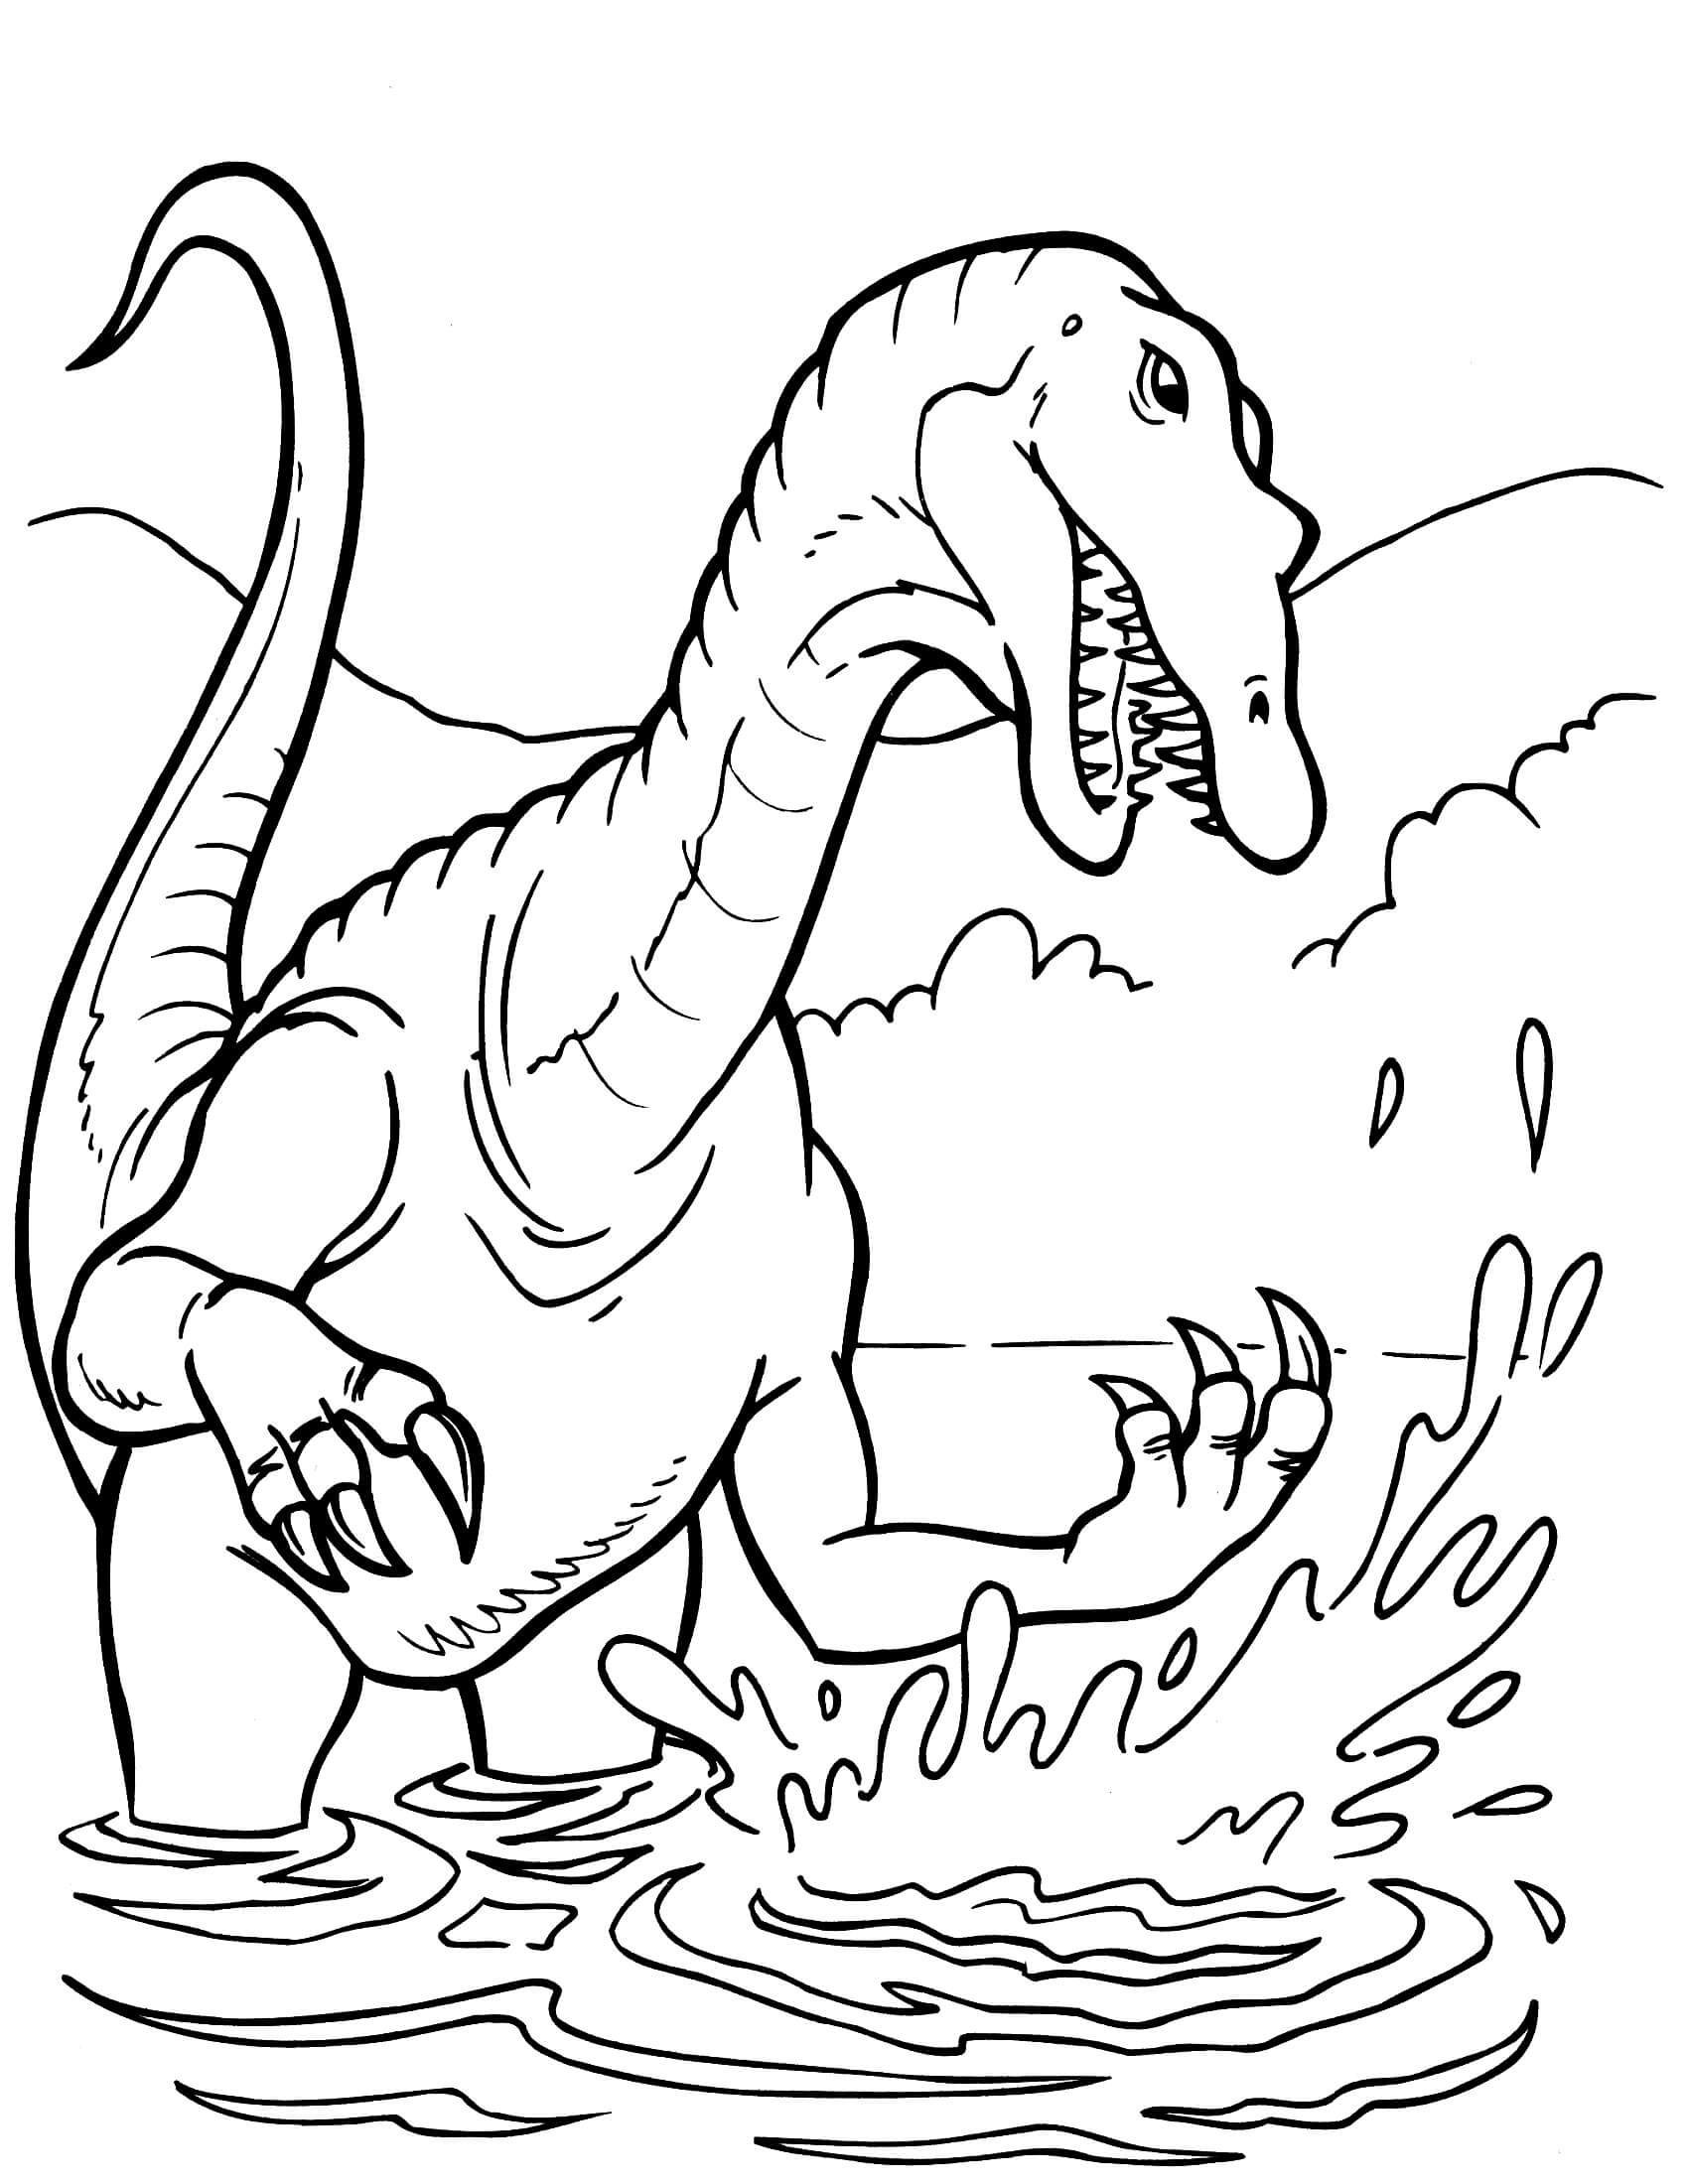 dinosaurs coloring pages printable coloring pages dinosaur free printable coloring pages coloring pages dinosaurs printable 1 1